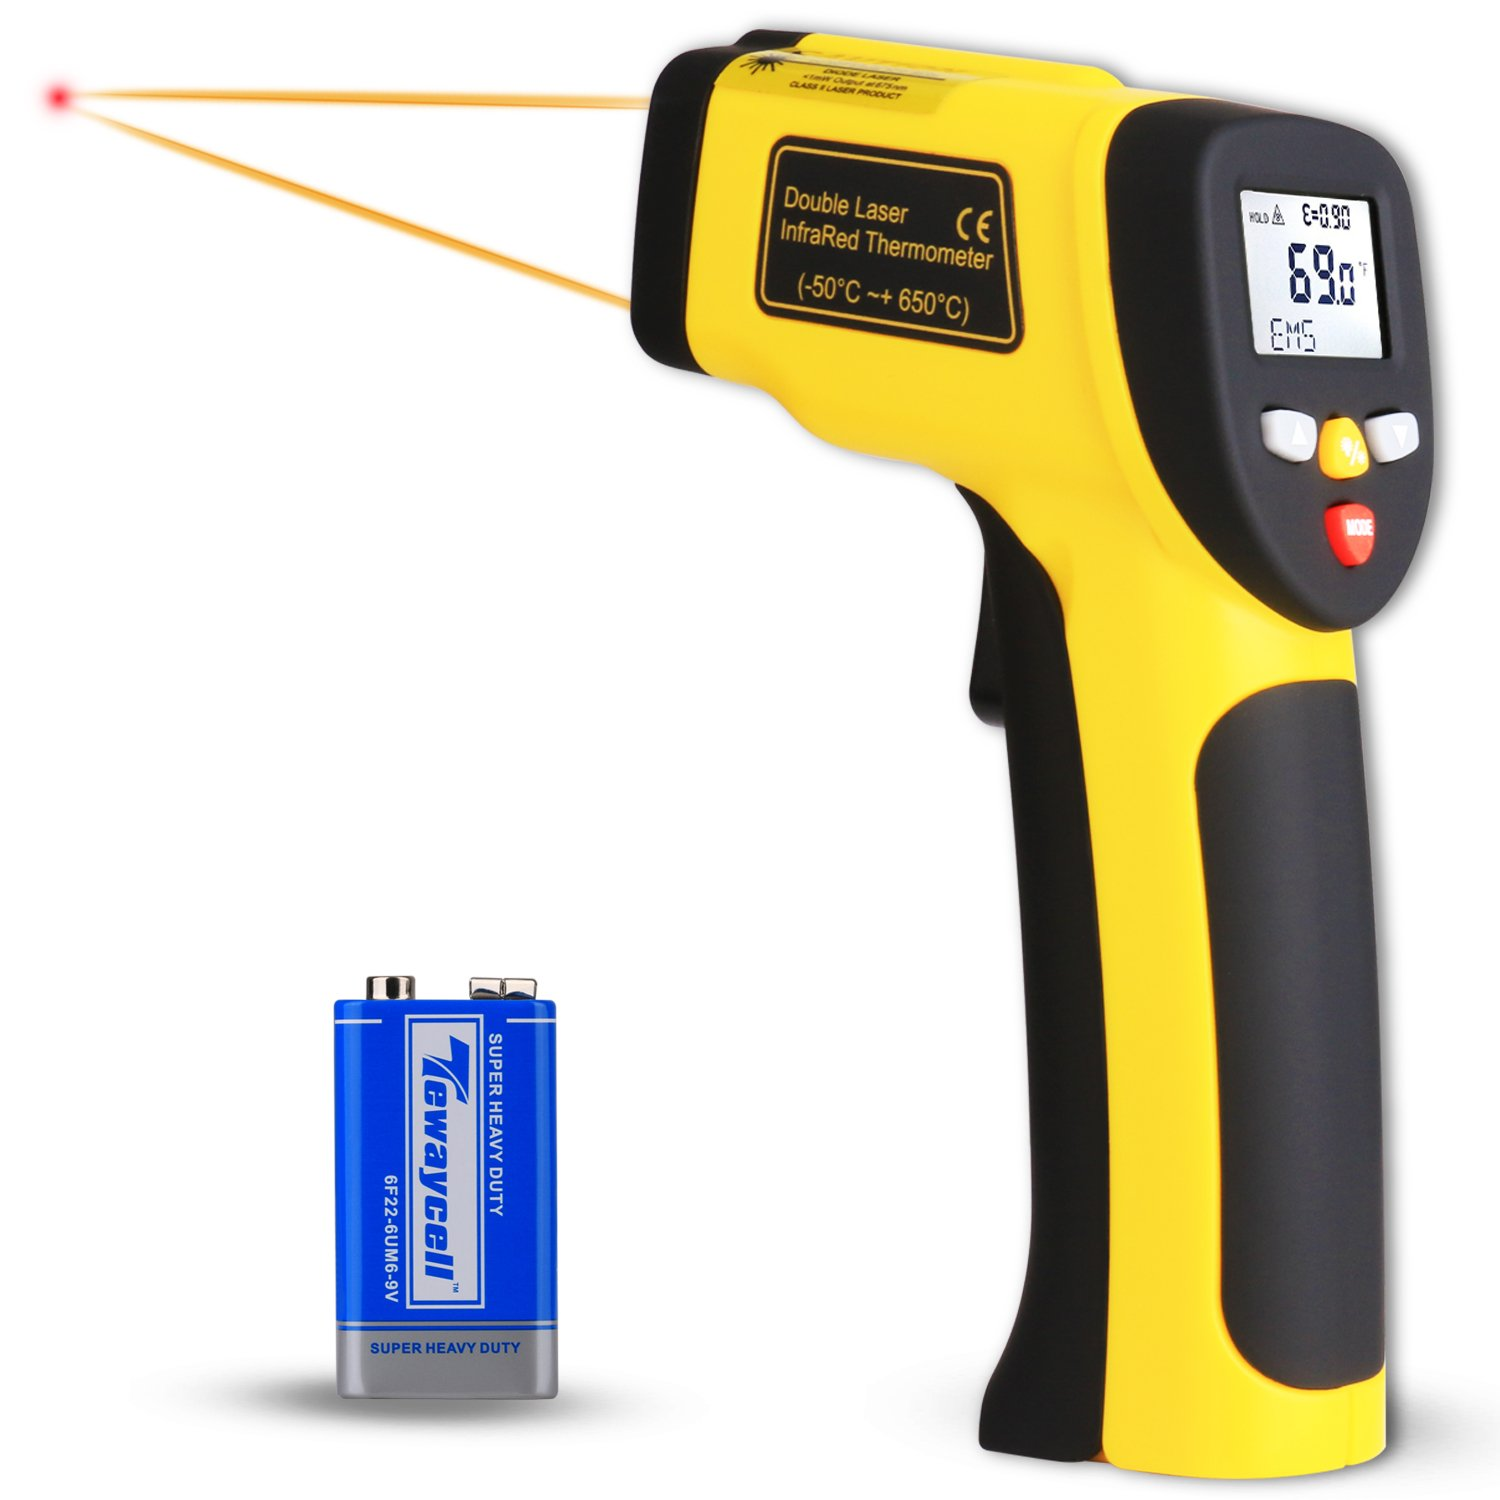 Infrared Thermometer, Venoro Non-Contact Digital IR Dual Laser Temperature Gun -58℉~1202℉ (-50℃~650℃) with MAX/MIN / AVG Display, Adjustable Emissivity for Cooking/Automotive / Industrial (1 Pack)